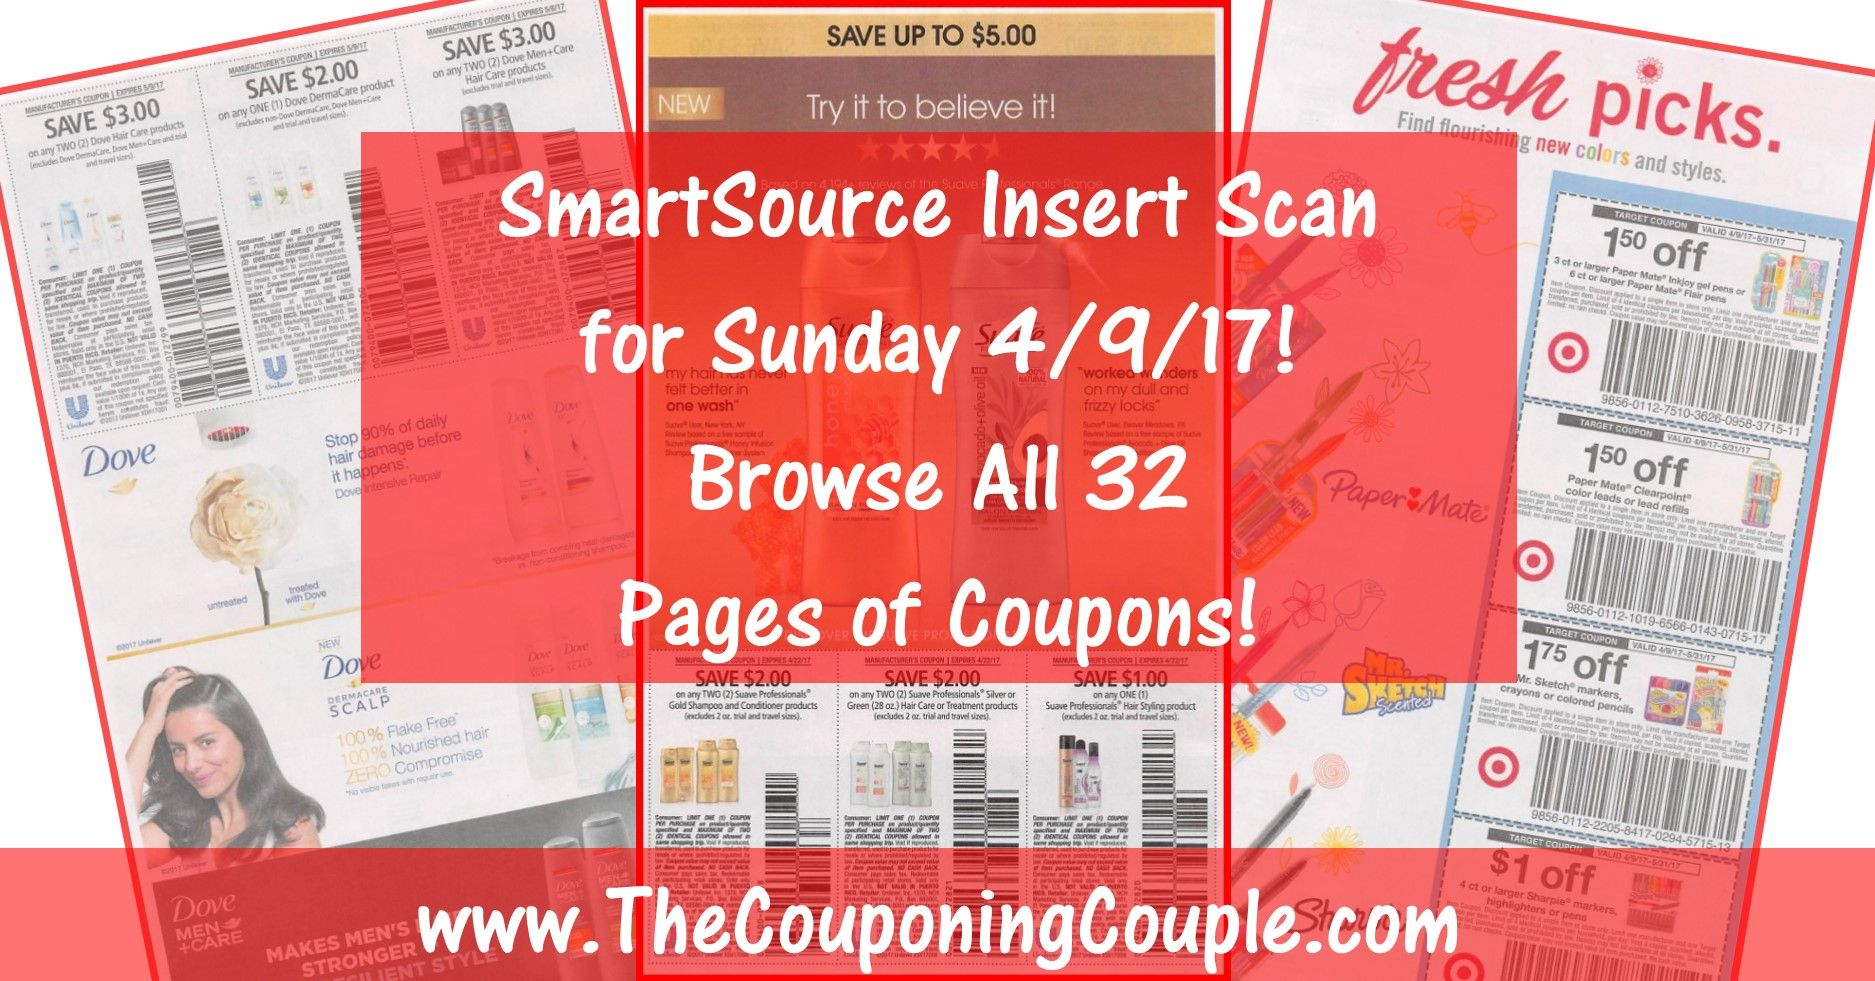 Want To See The Exact Coupons We Are Expecting In Sunday S 4 9 Smartsource Insert Check Out The Actual Scanne Smartsource Coupon Inserts Smartsource Coupons